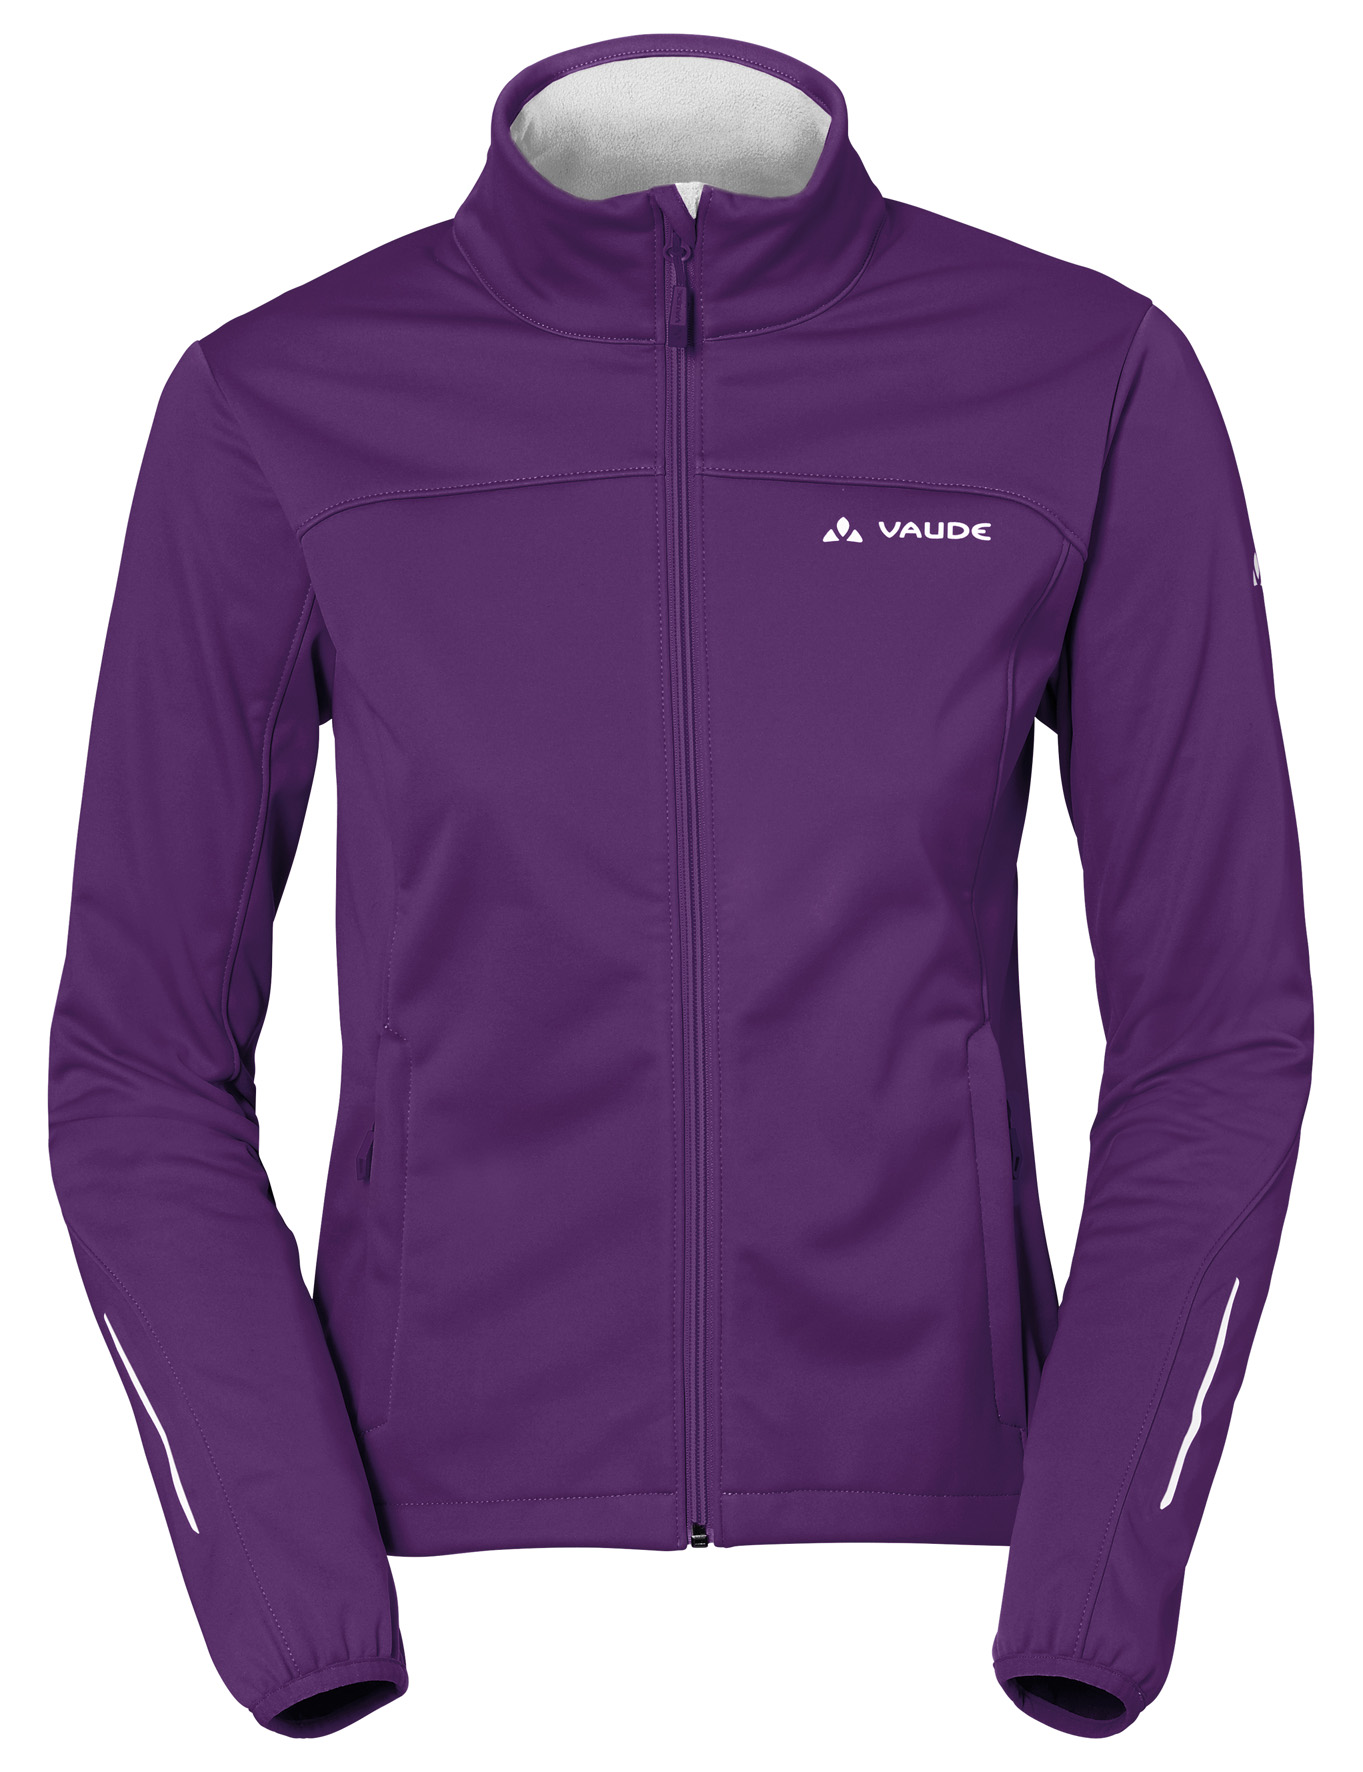 VAUDE Women´s Wintry Jacket III elderberry Größe 40 - schneider-sports